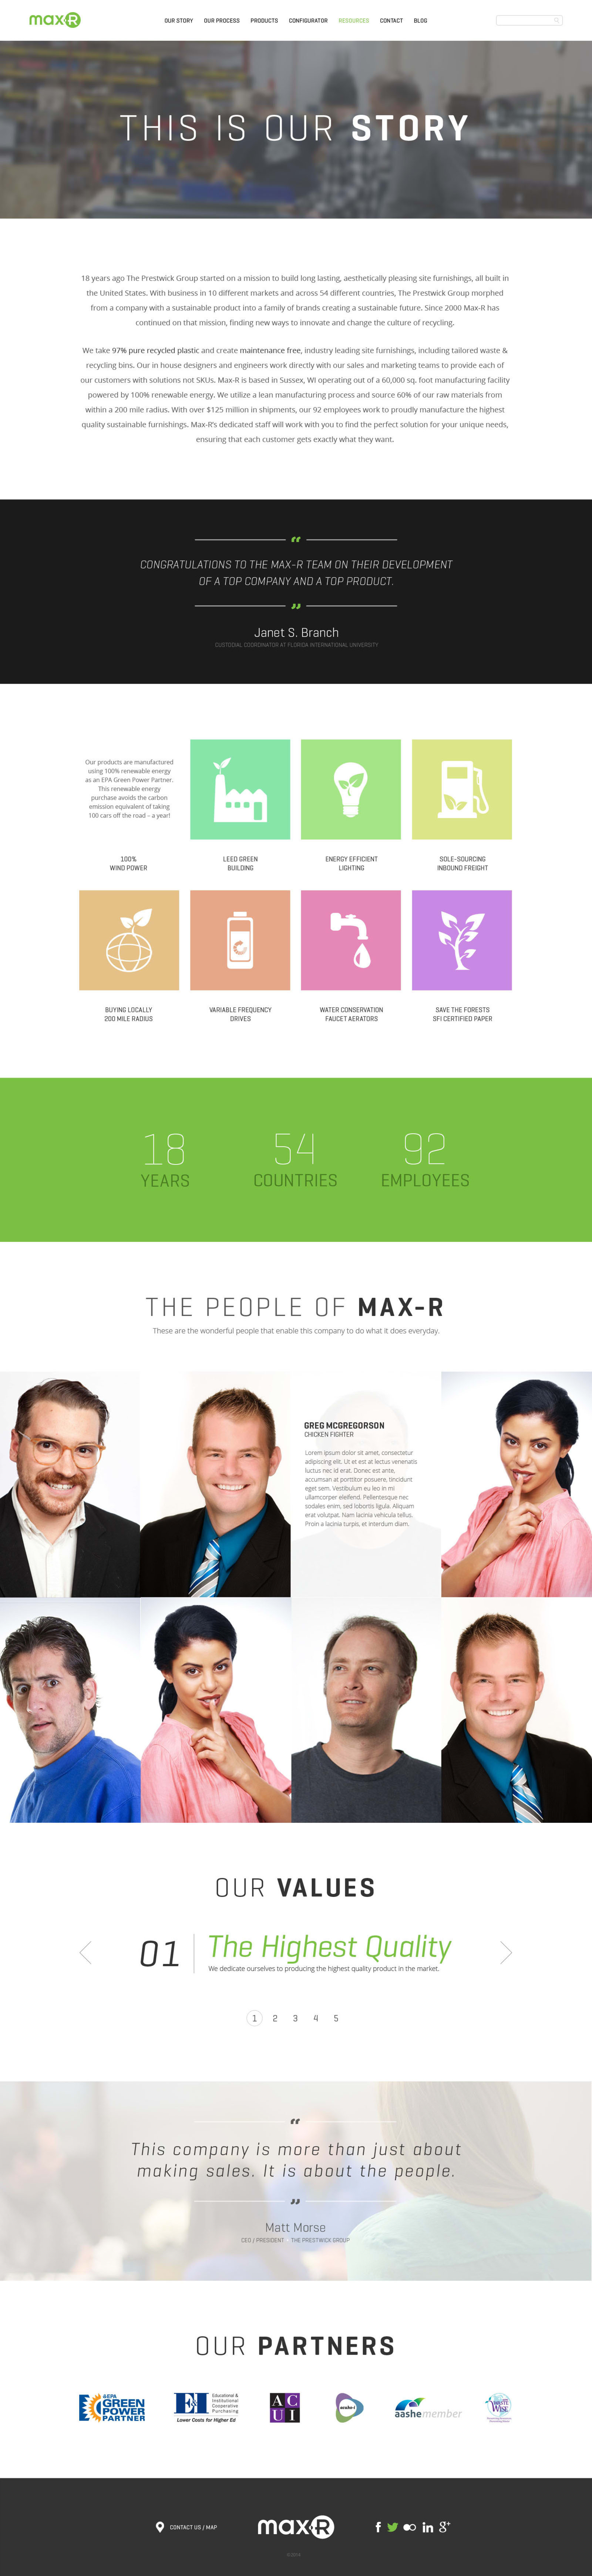 Max-R Website Story Page